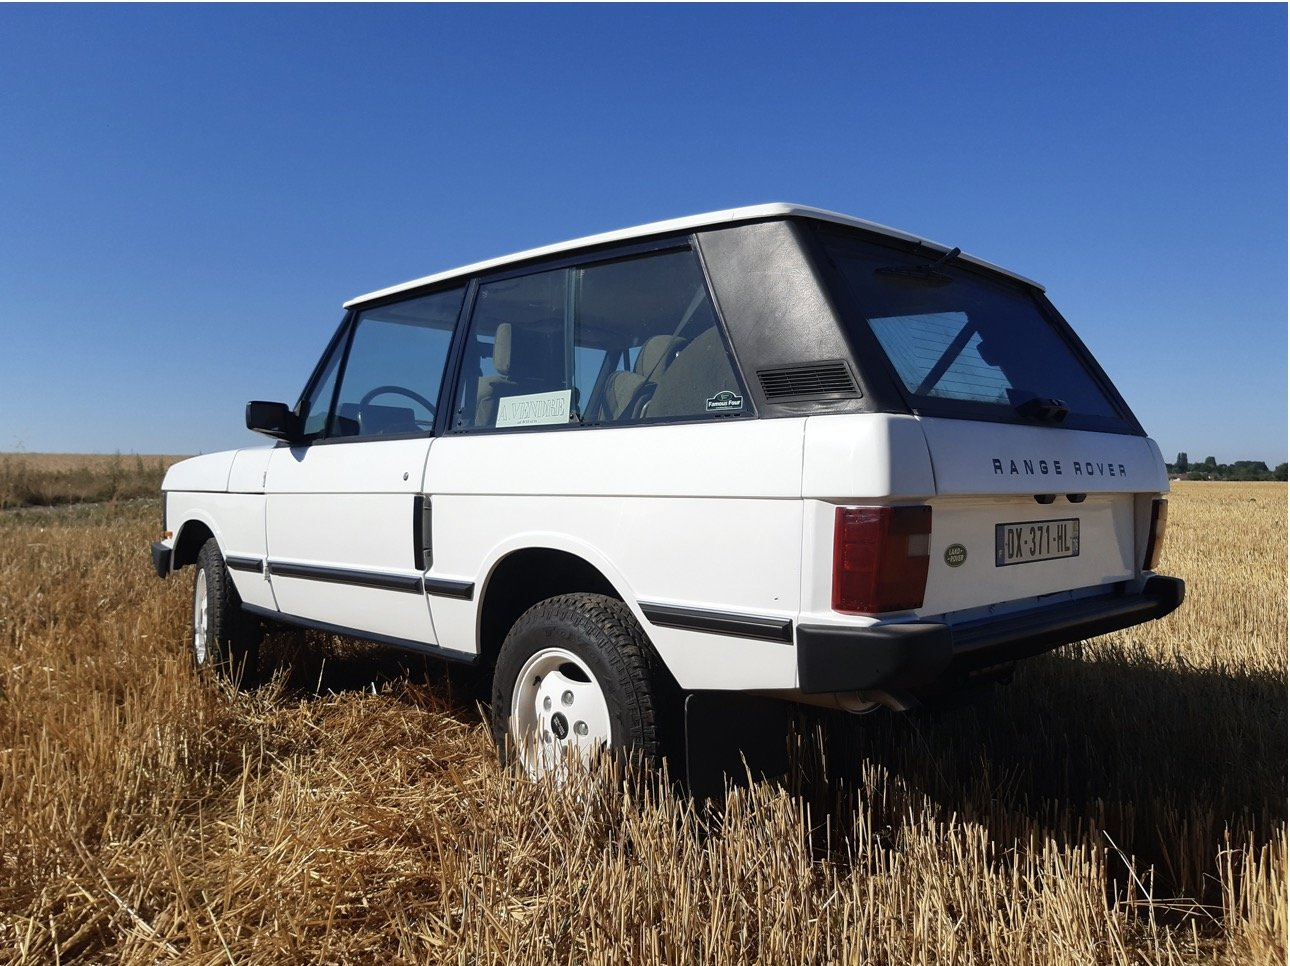 1993 Range rover For Sale (picture 2 of 6)